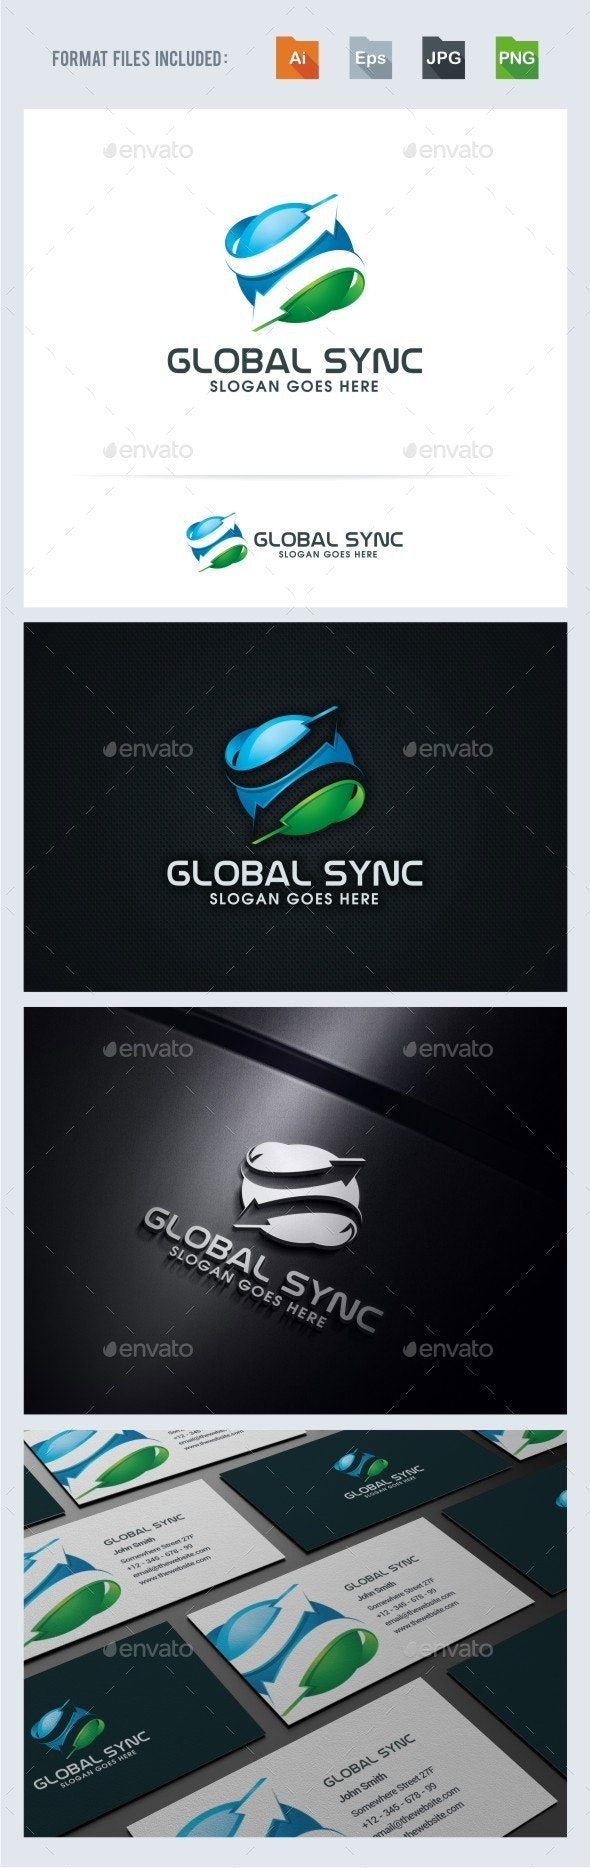 Global Sync Logo Template - 3d Abstract